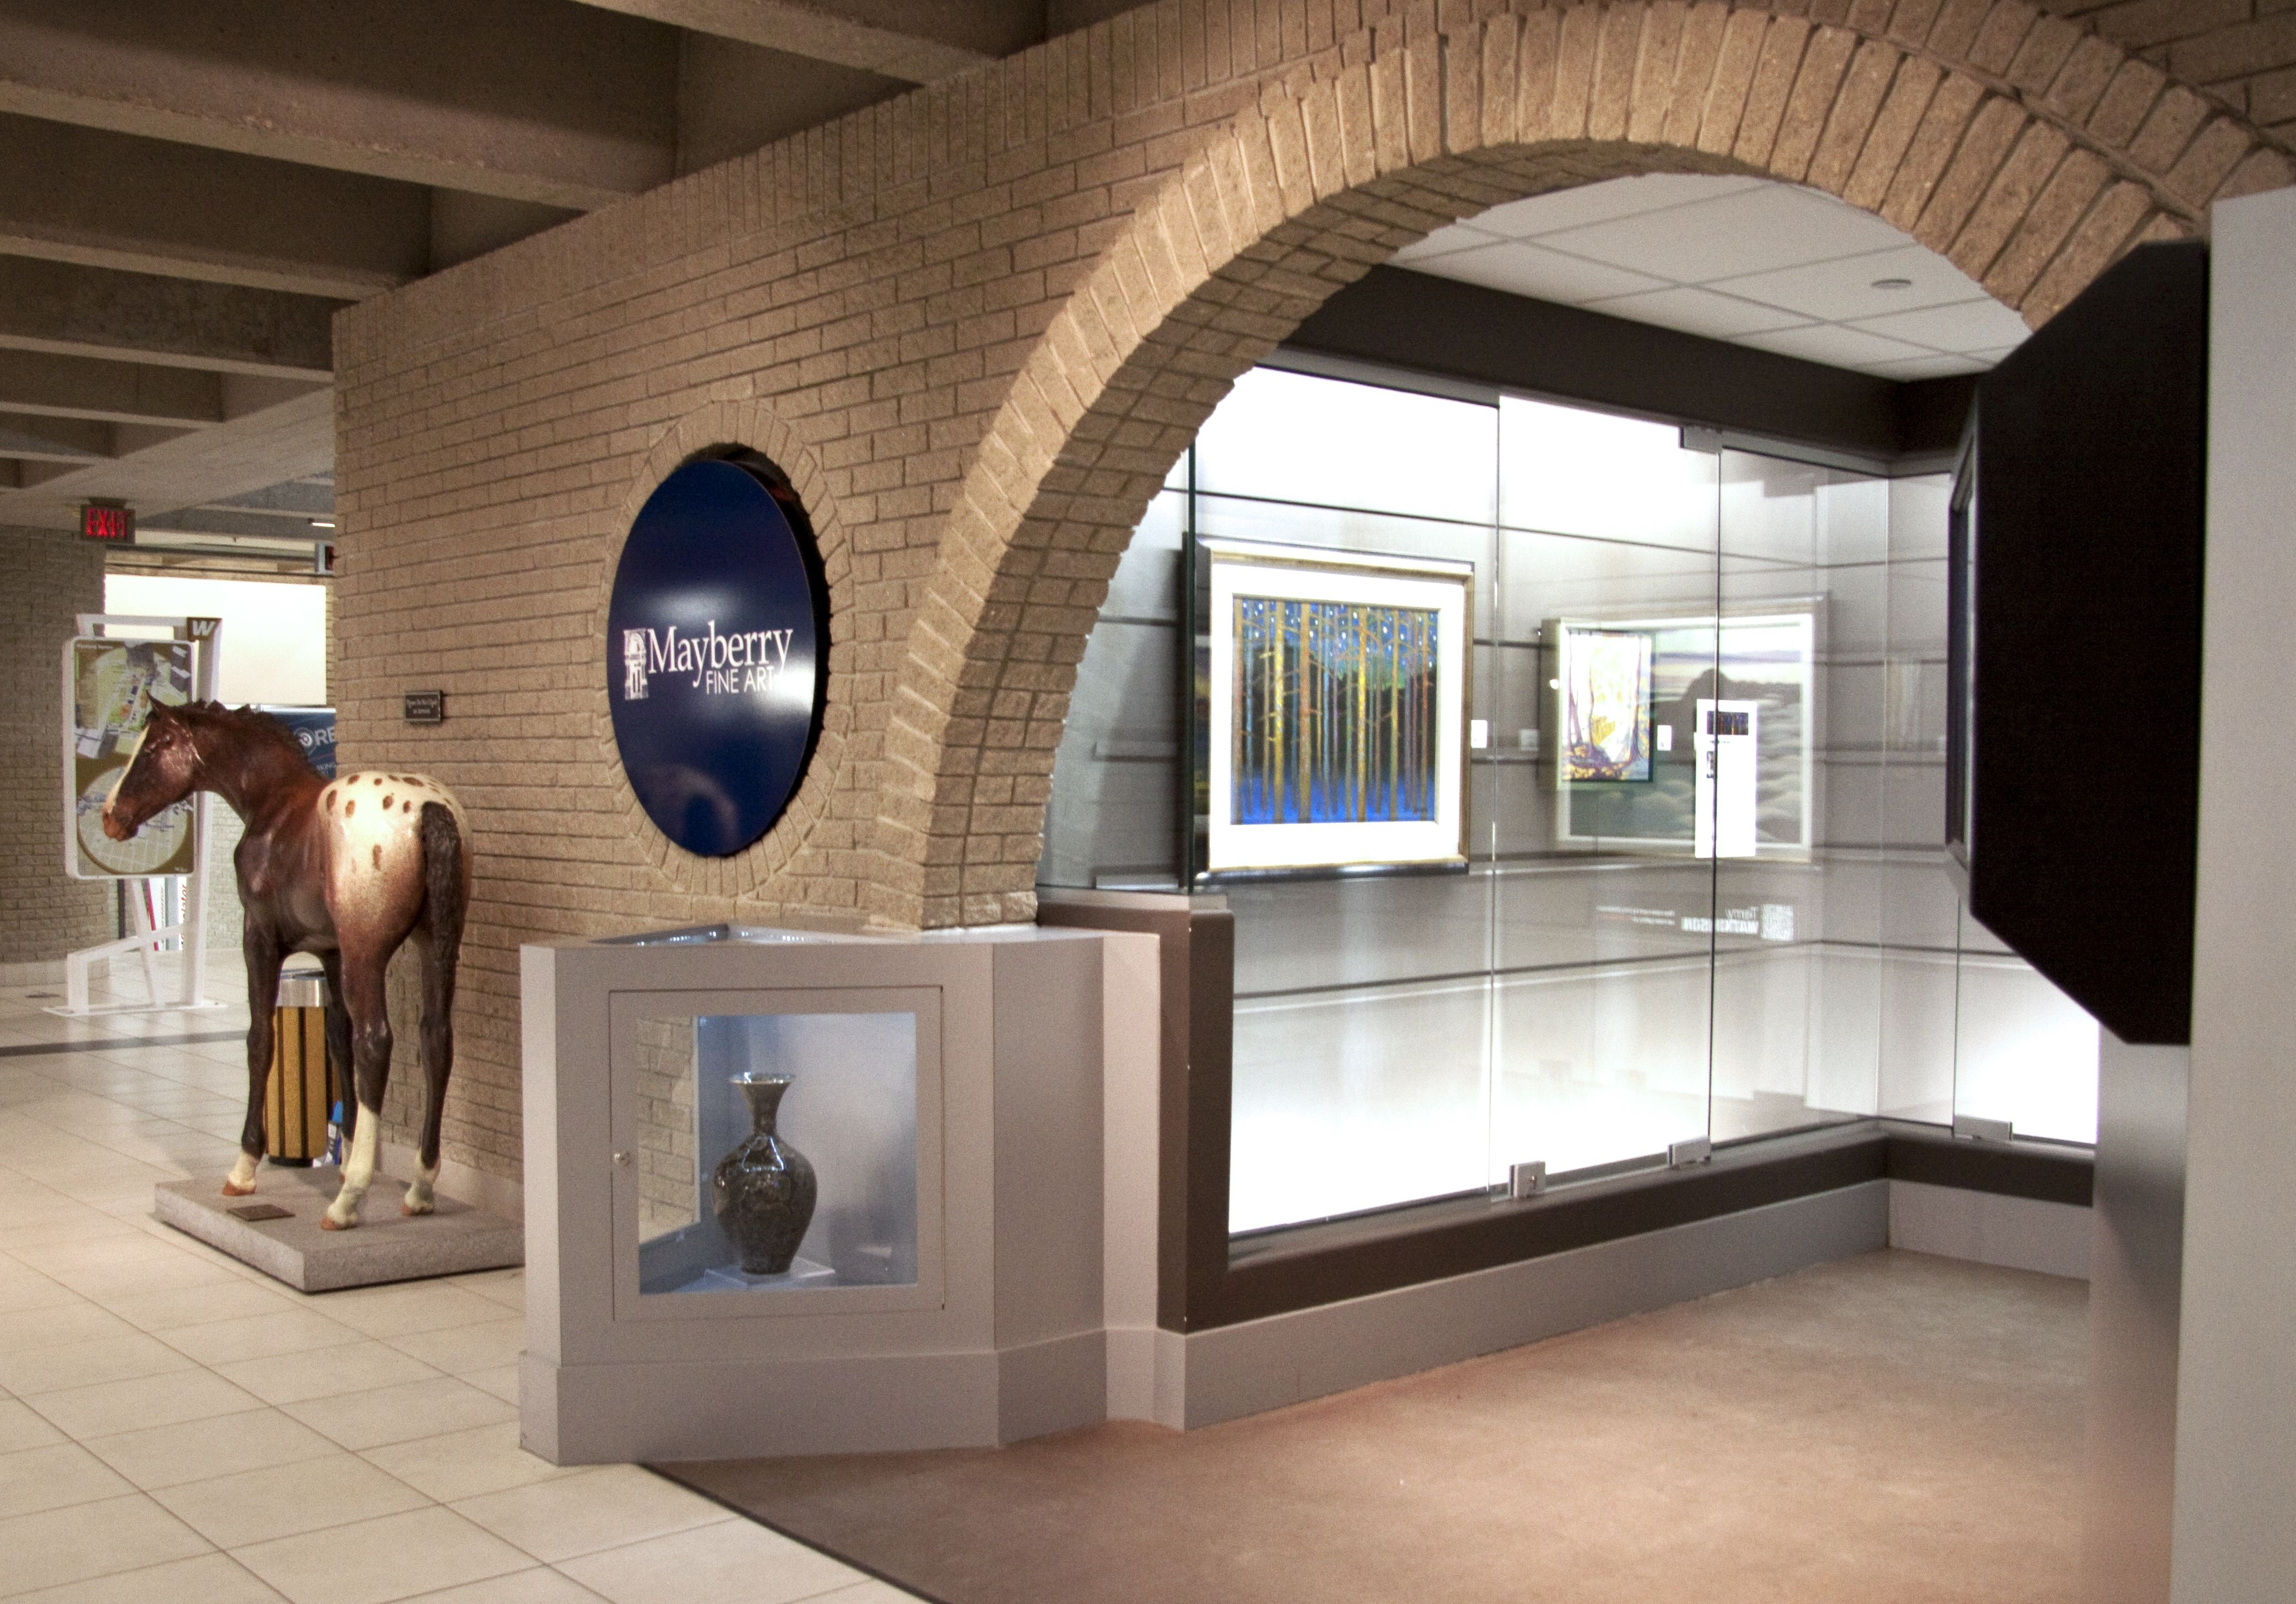 Mayberry Fine Art has a satellite space in Winnipeg Square Mall, located near Portage and Main. It features a display that changes monthly and is open during mall hours.